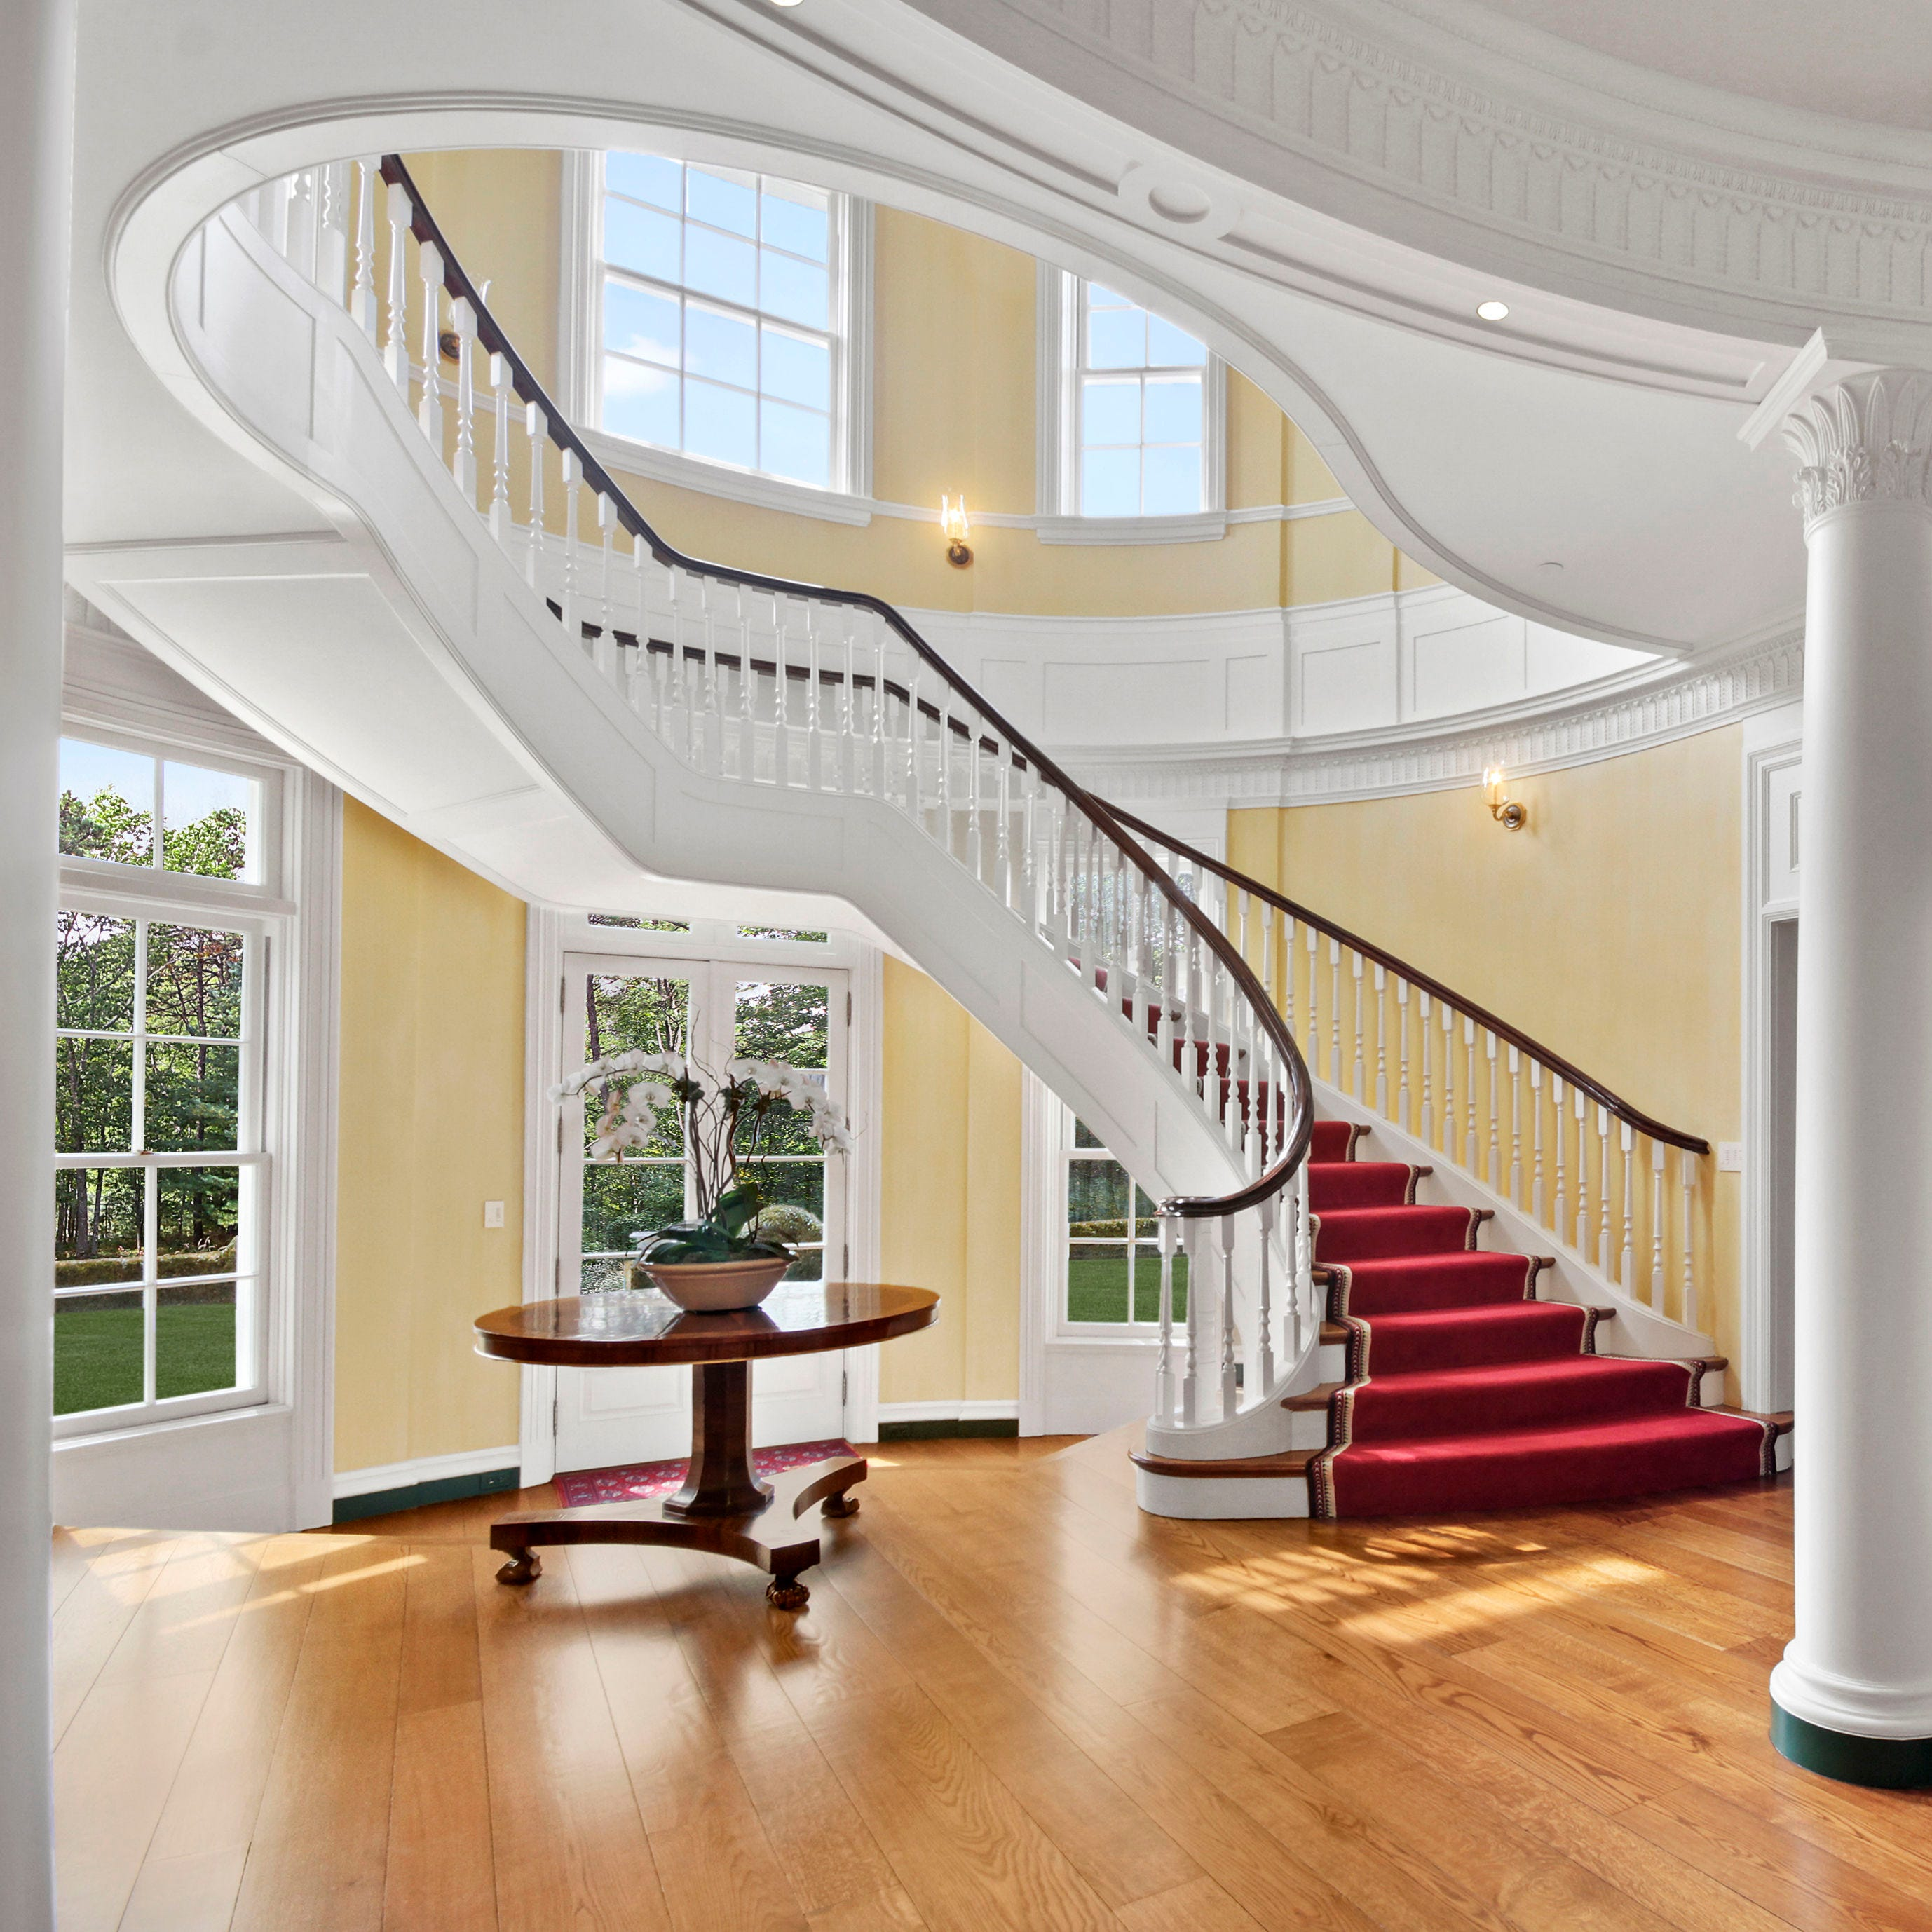 Chappaqua mansion to be auctioned on May 18: See photos